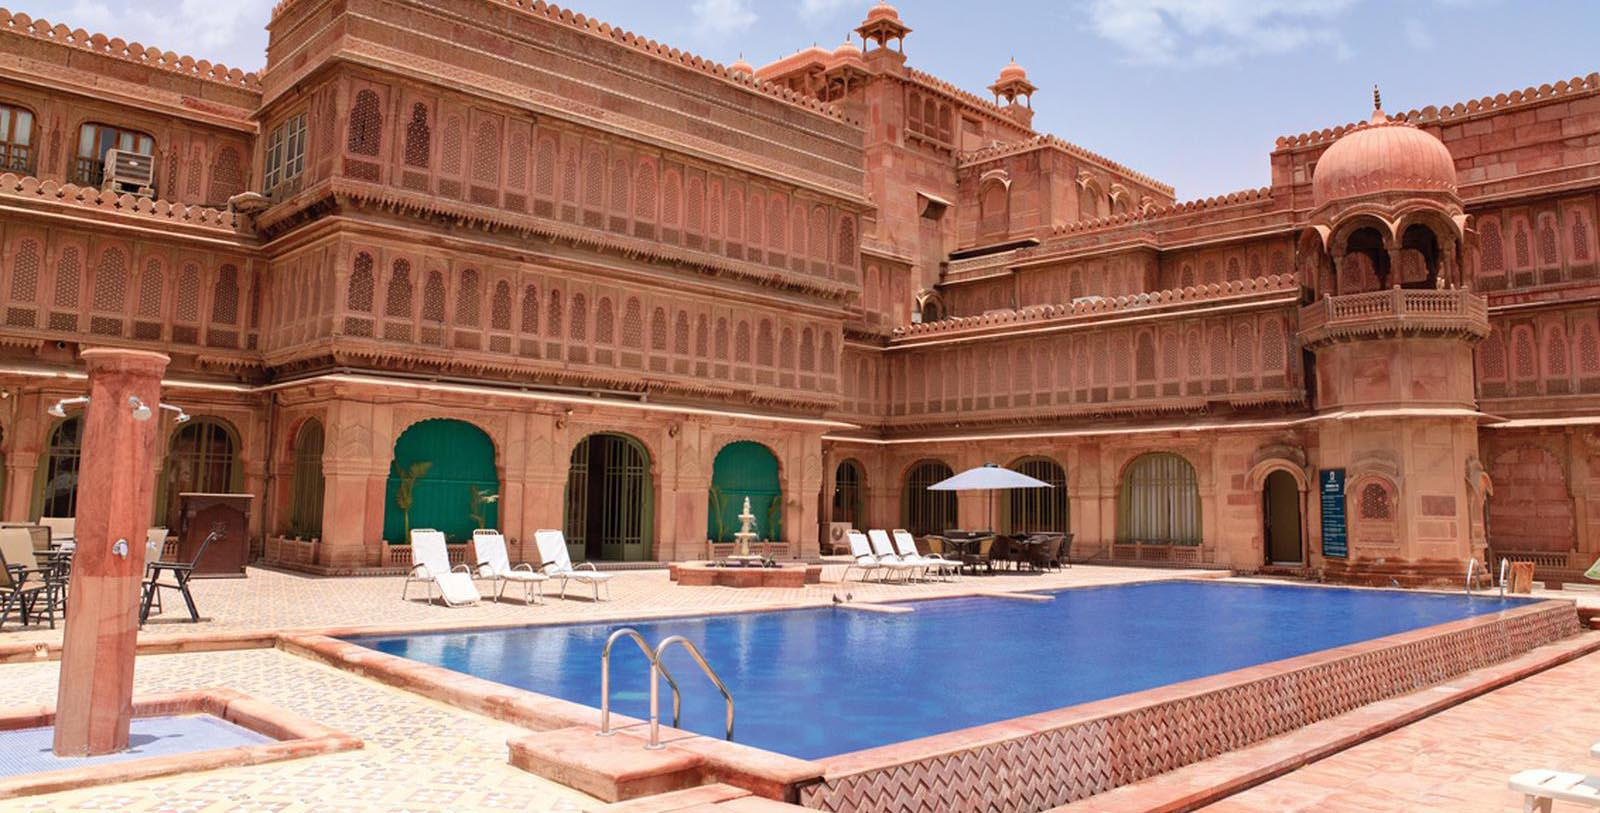 Image of Pool Laxmi Niwas Palace, 1904, Member of Historic Hotels Worldwide, in Bikaner, India, Explore